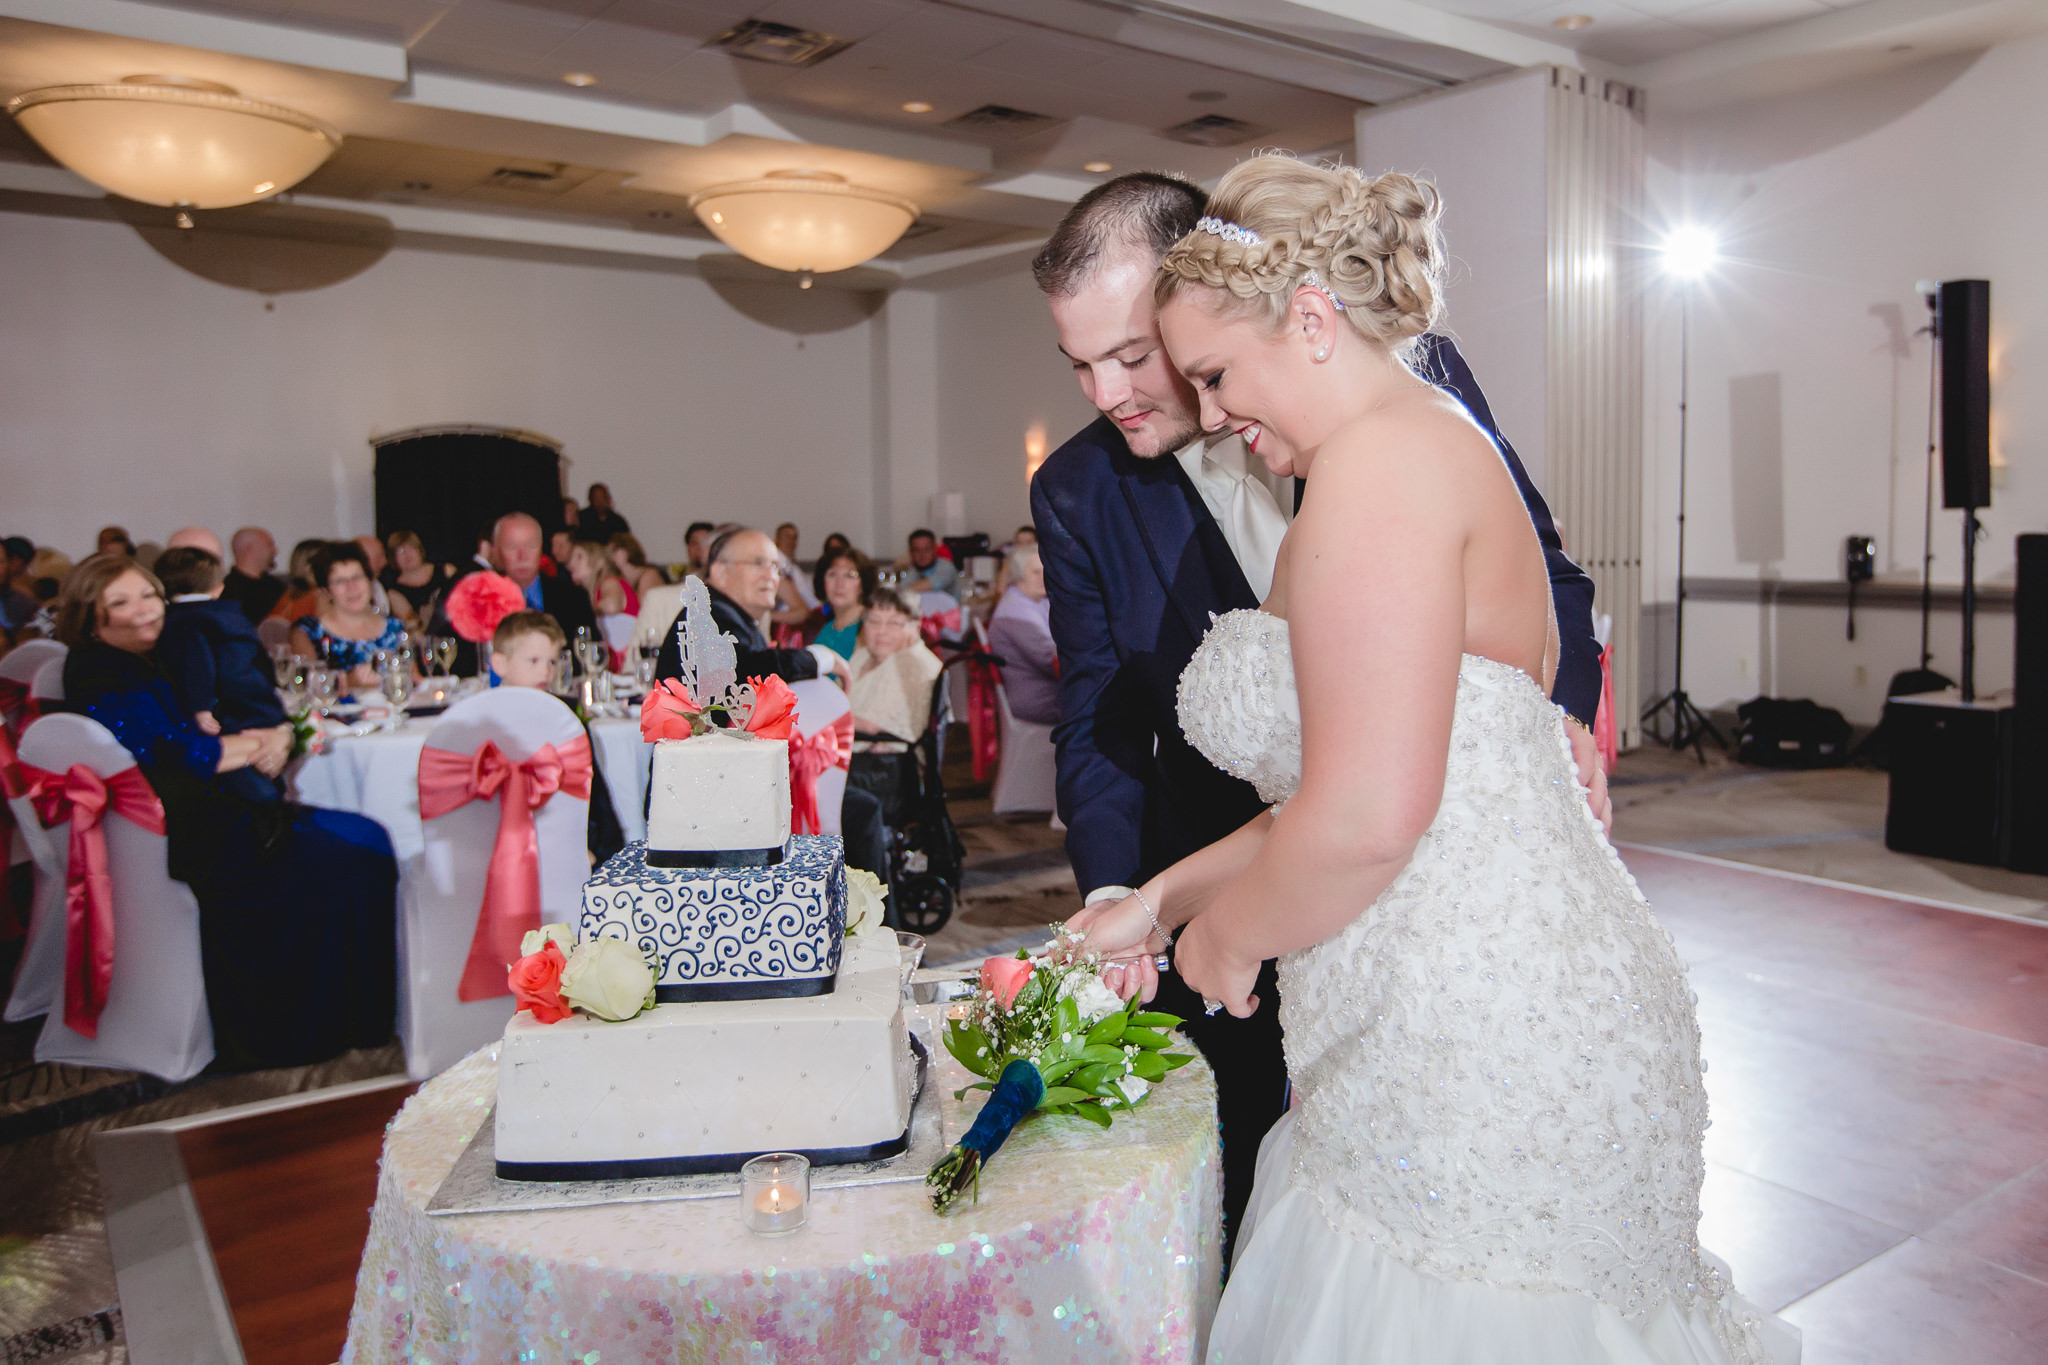 Bride and groom cut the cake in the Three Rivers Room of the Pittsburgh Airport Marriott